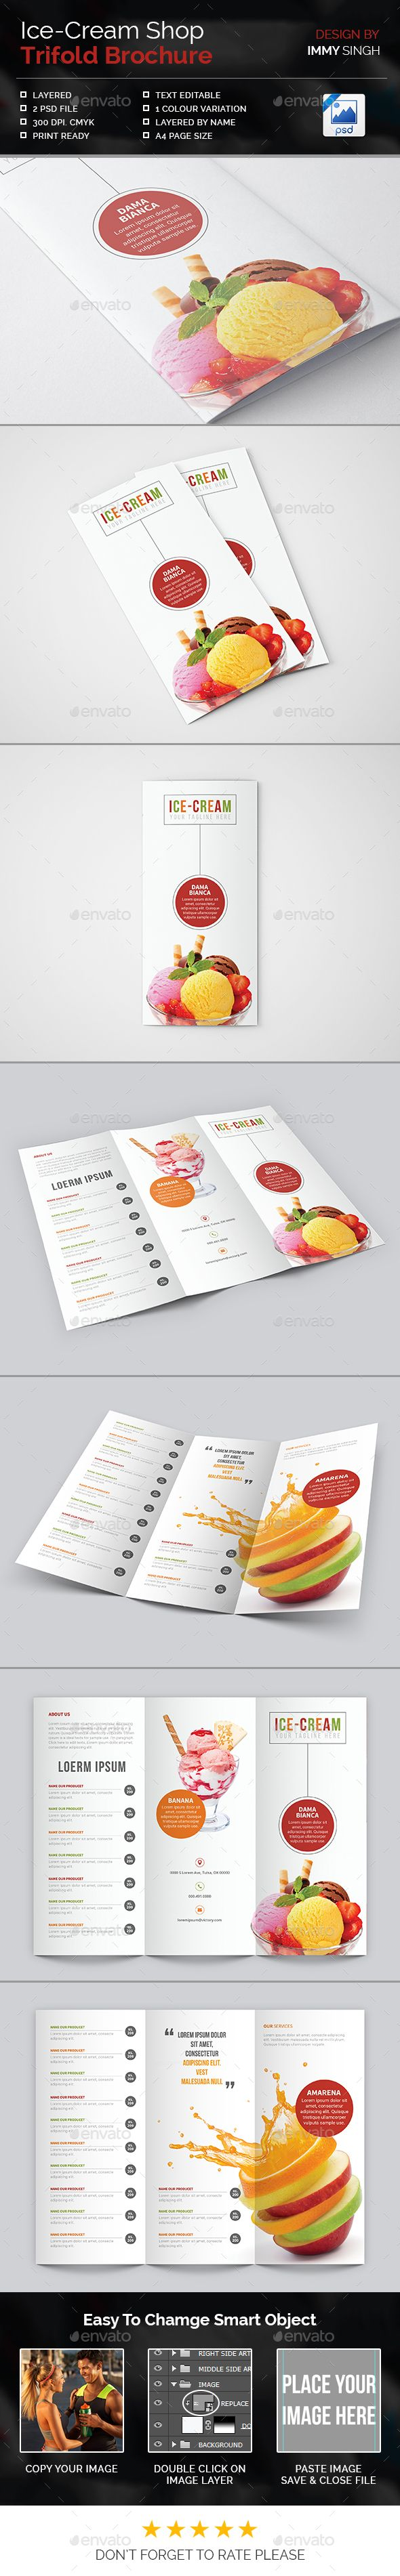 Ice-Cream Shop Trifold Brochure Template PSD #design Download: http://graphicriver.net/item/icecream-shop-trifold-brochure/14122337?ref=ksioks